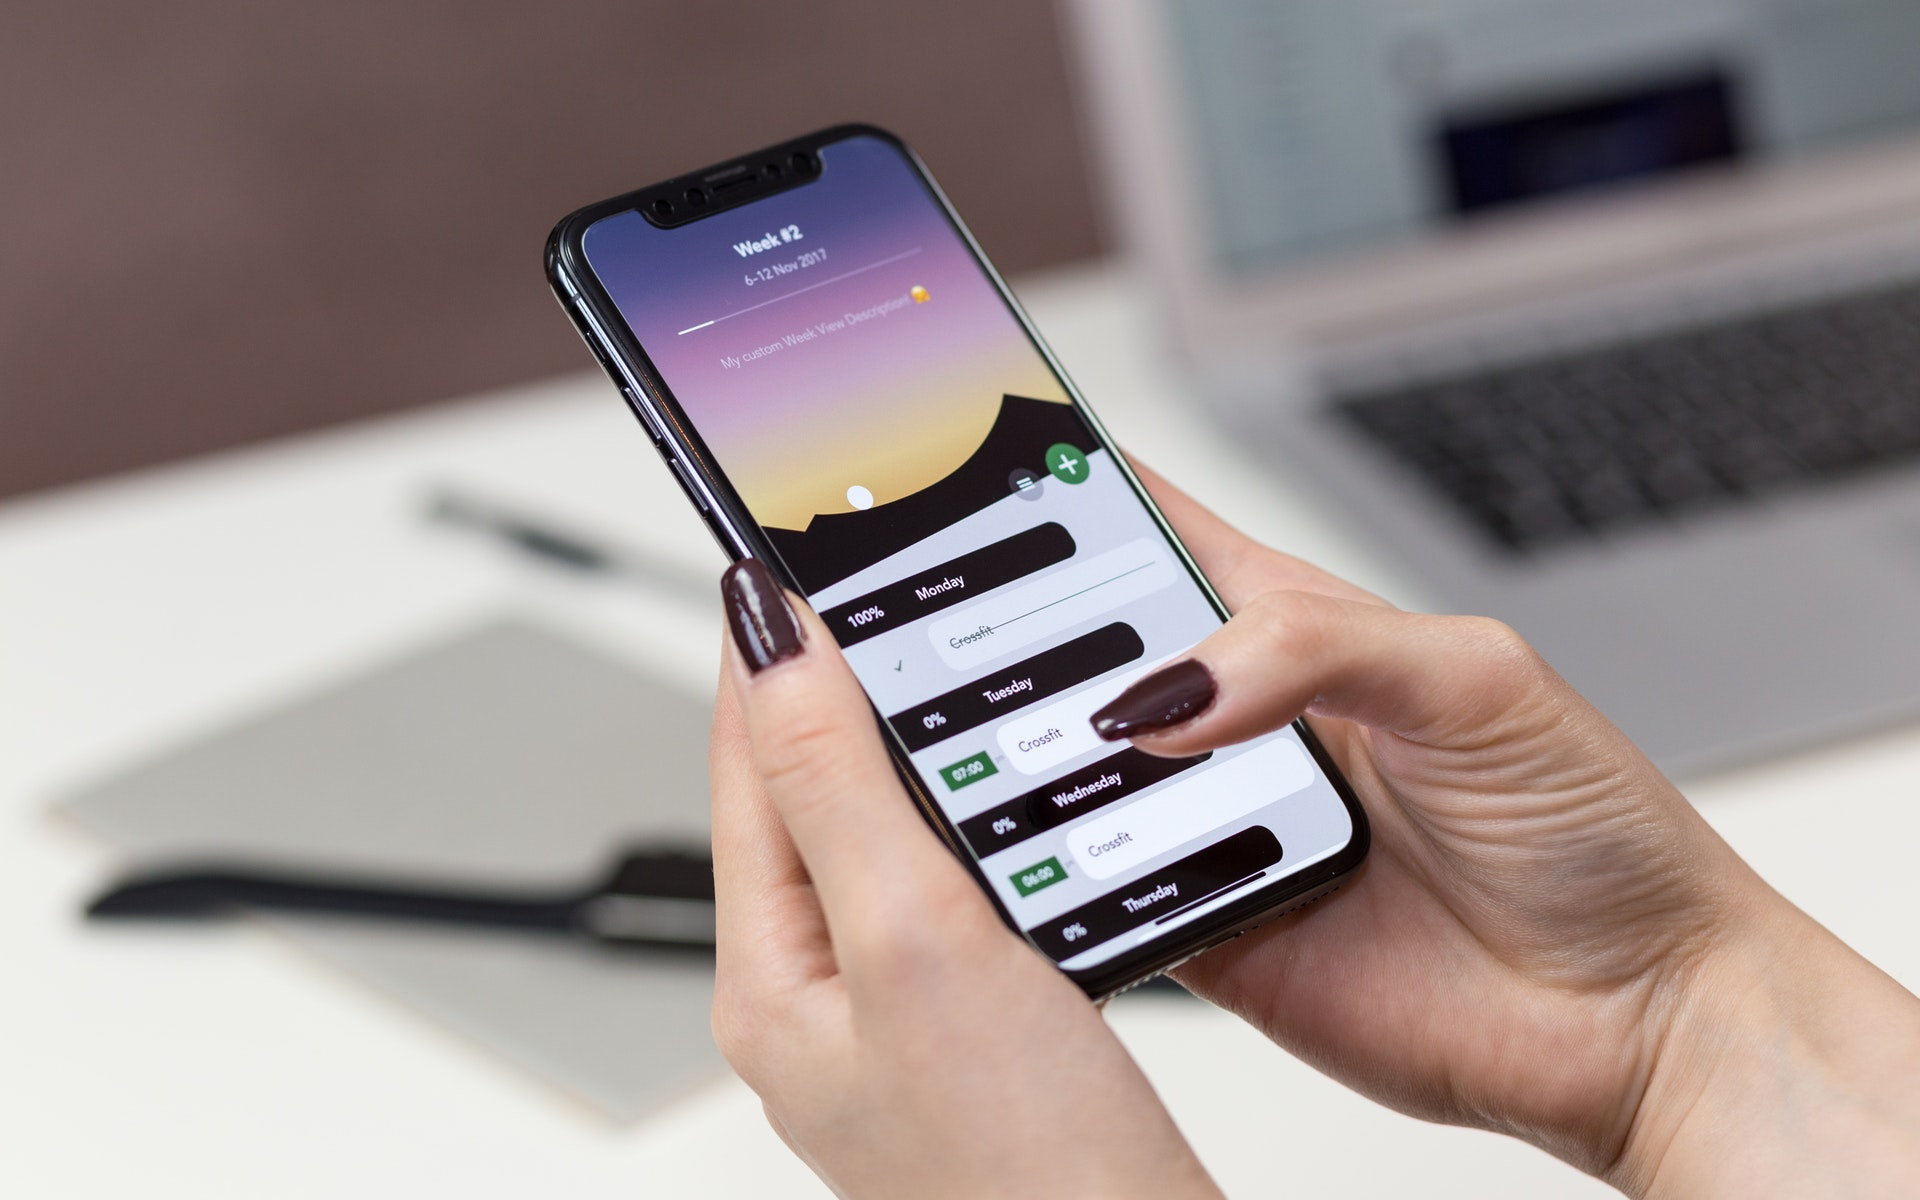 App developers have a business model that makes determining their status as a principal or an agent important to determine for revenue recognition.